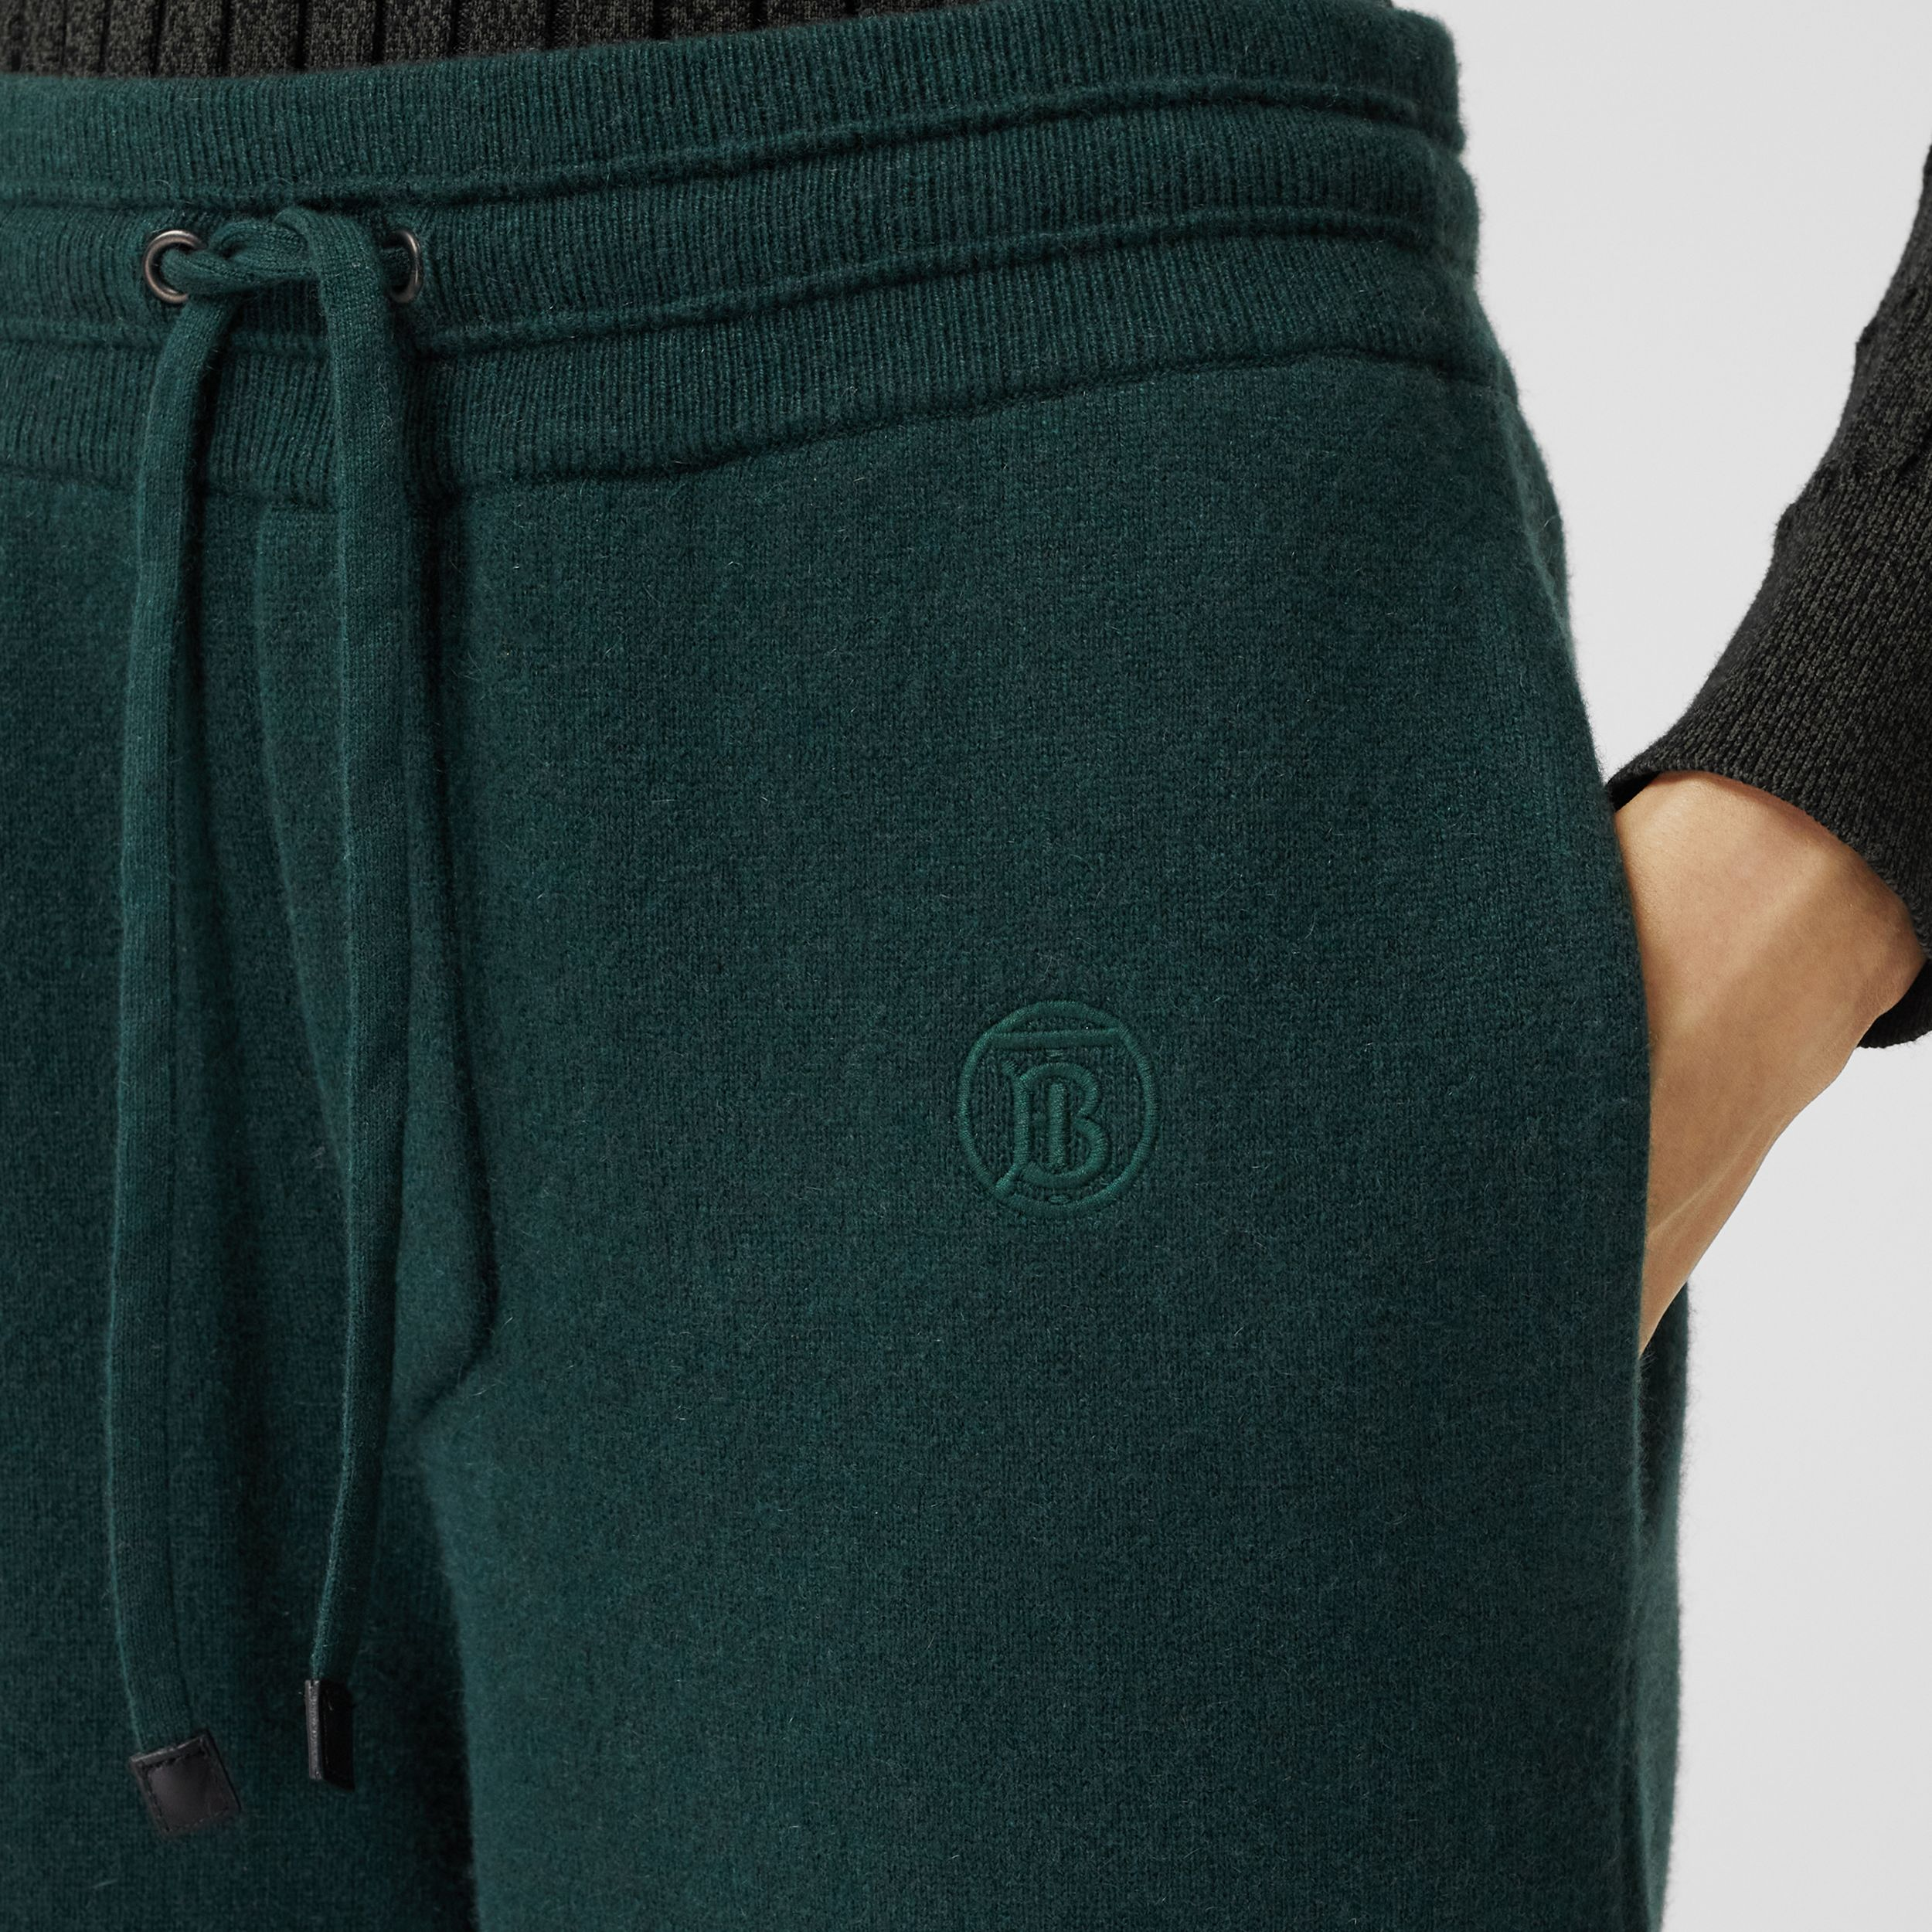 Monogram Motif Cashmere Blend Jogging Pants in Bottle Green - Women | Burberry Hong Kong S.A.R. - 2